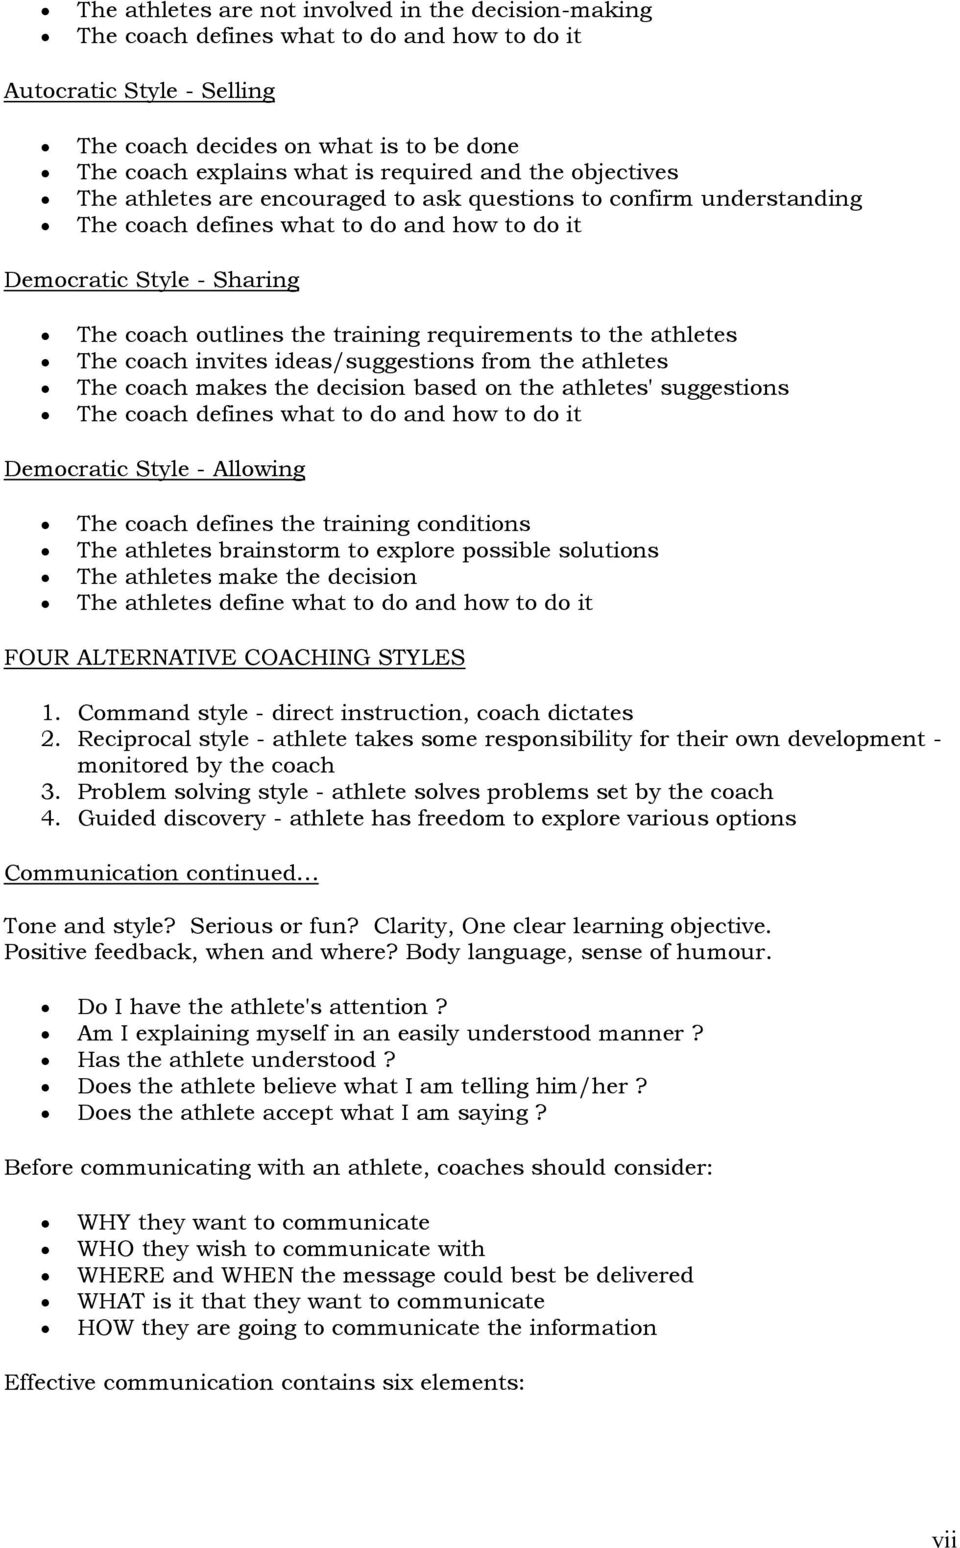 training requirements to the athletes The coach invites ideas/suggestions from the athletes The coach makes the decision based on the athletes' suggestions The coach defines what to do and how to do